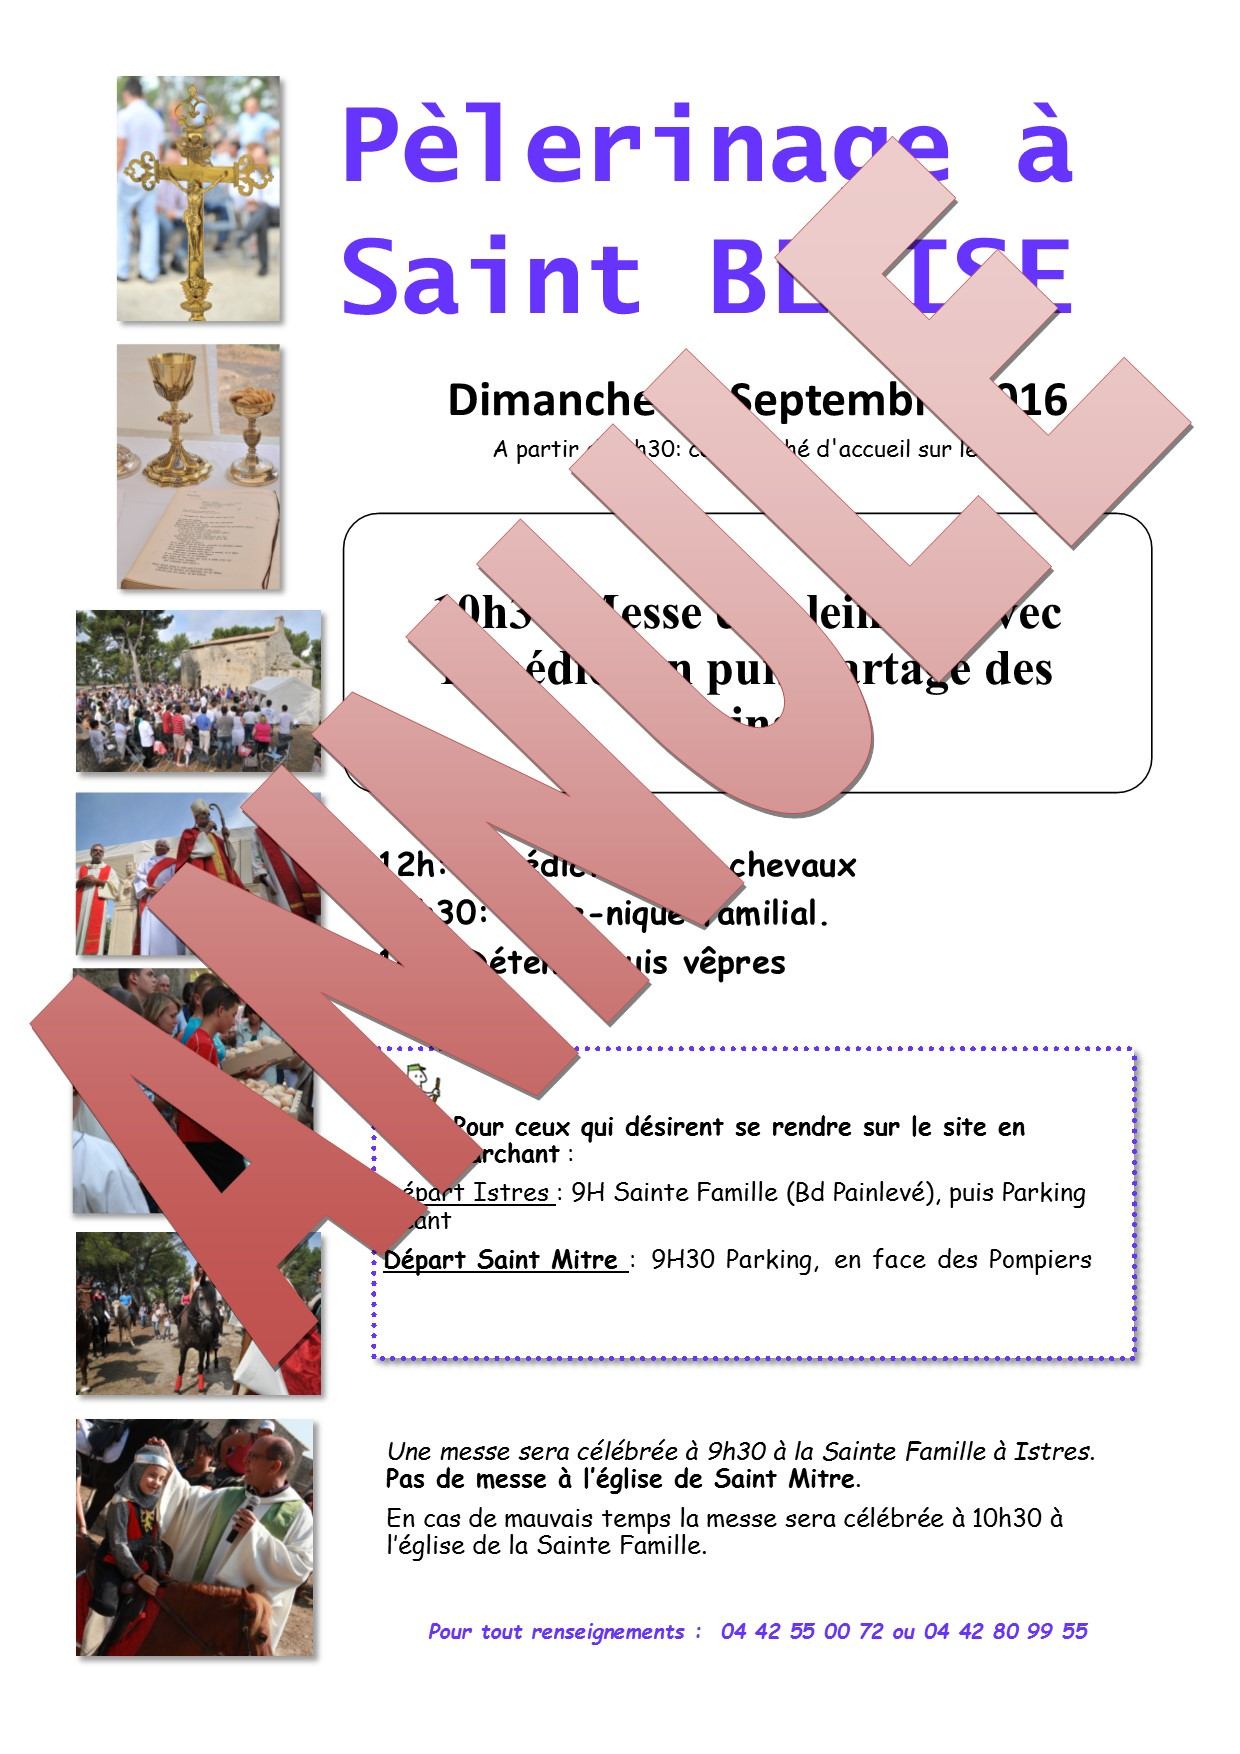 Annulation Pèlerinage Saint Blaise le 11 Septembre 2016